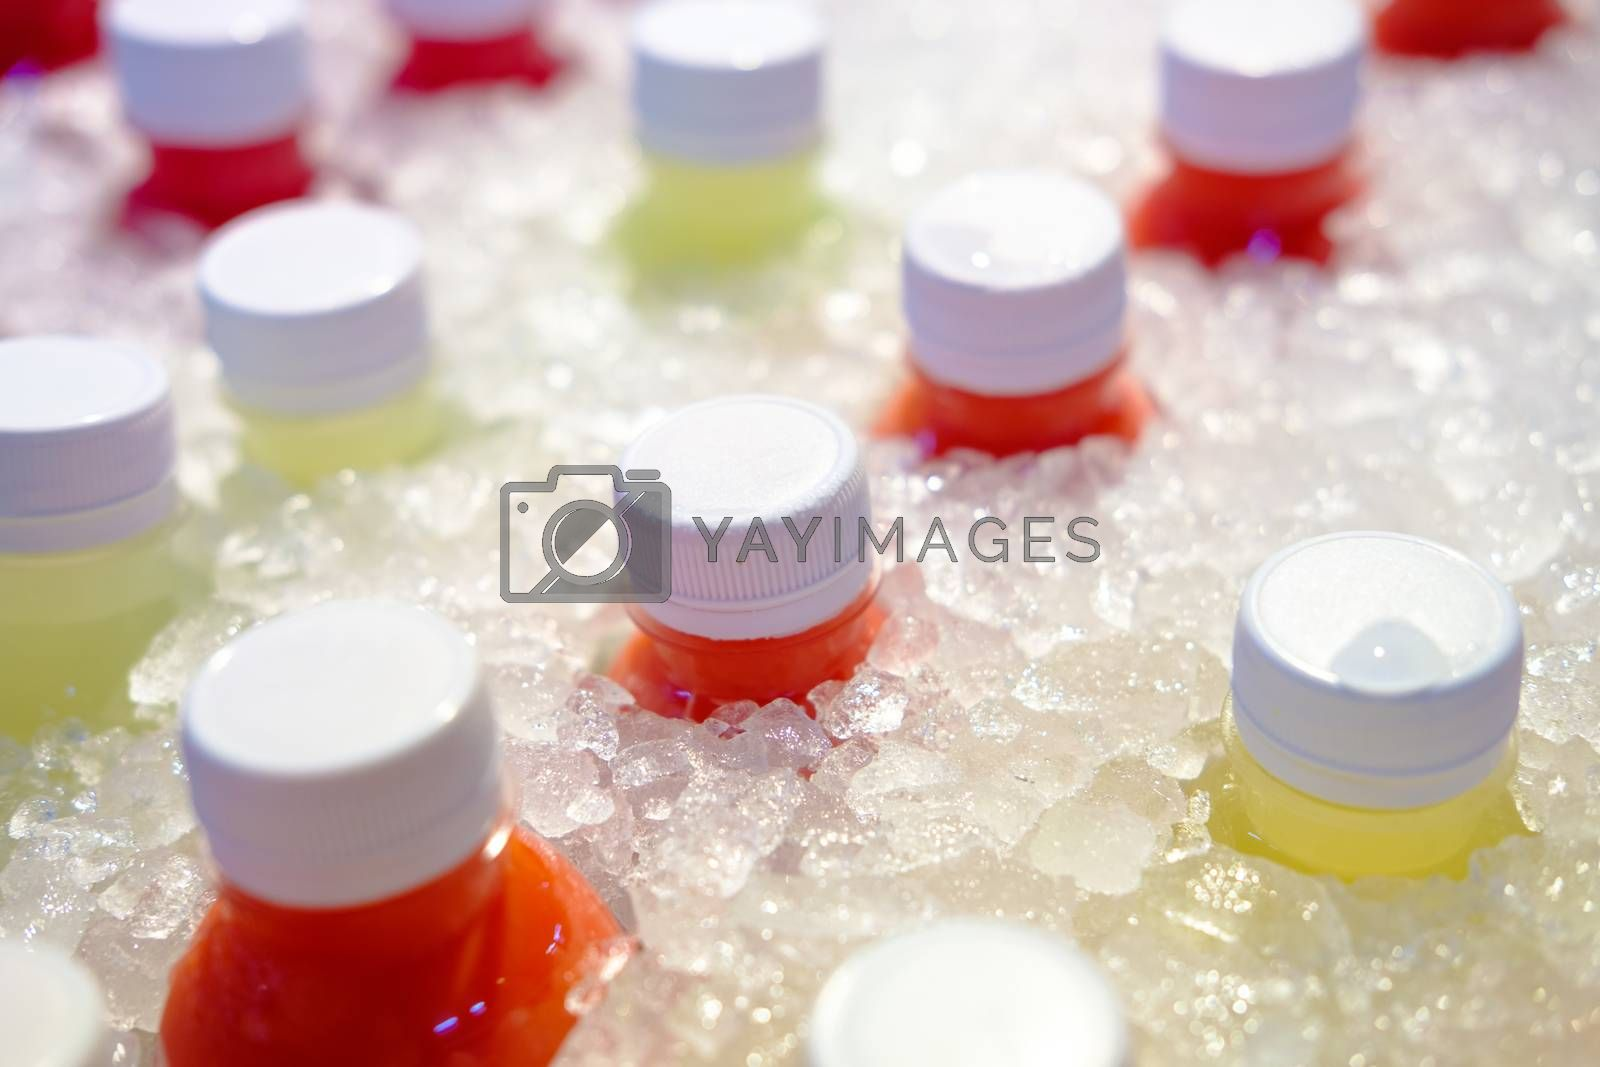 Close-up of Fresh juice of different exotic fruits bottles on the ice box. Mix of plastic bottles on the ice bucket for sale in food market.